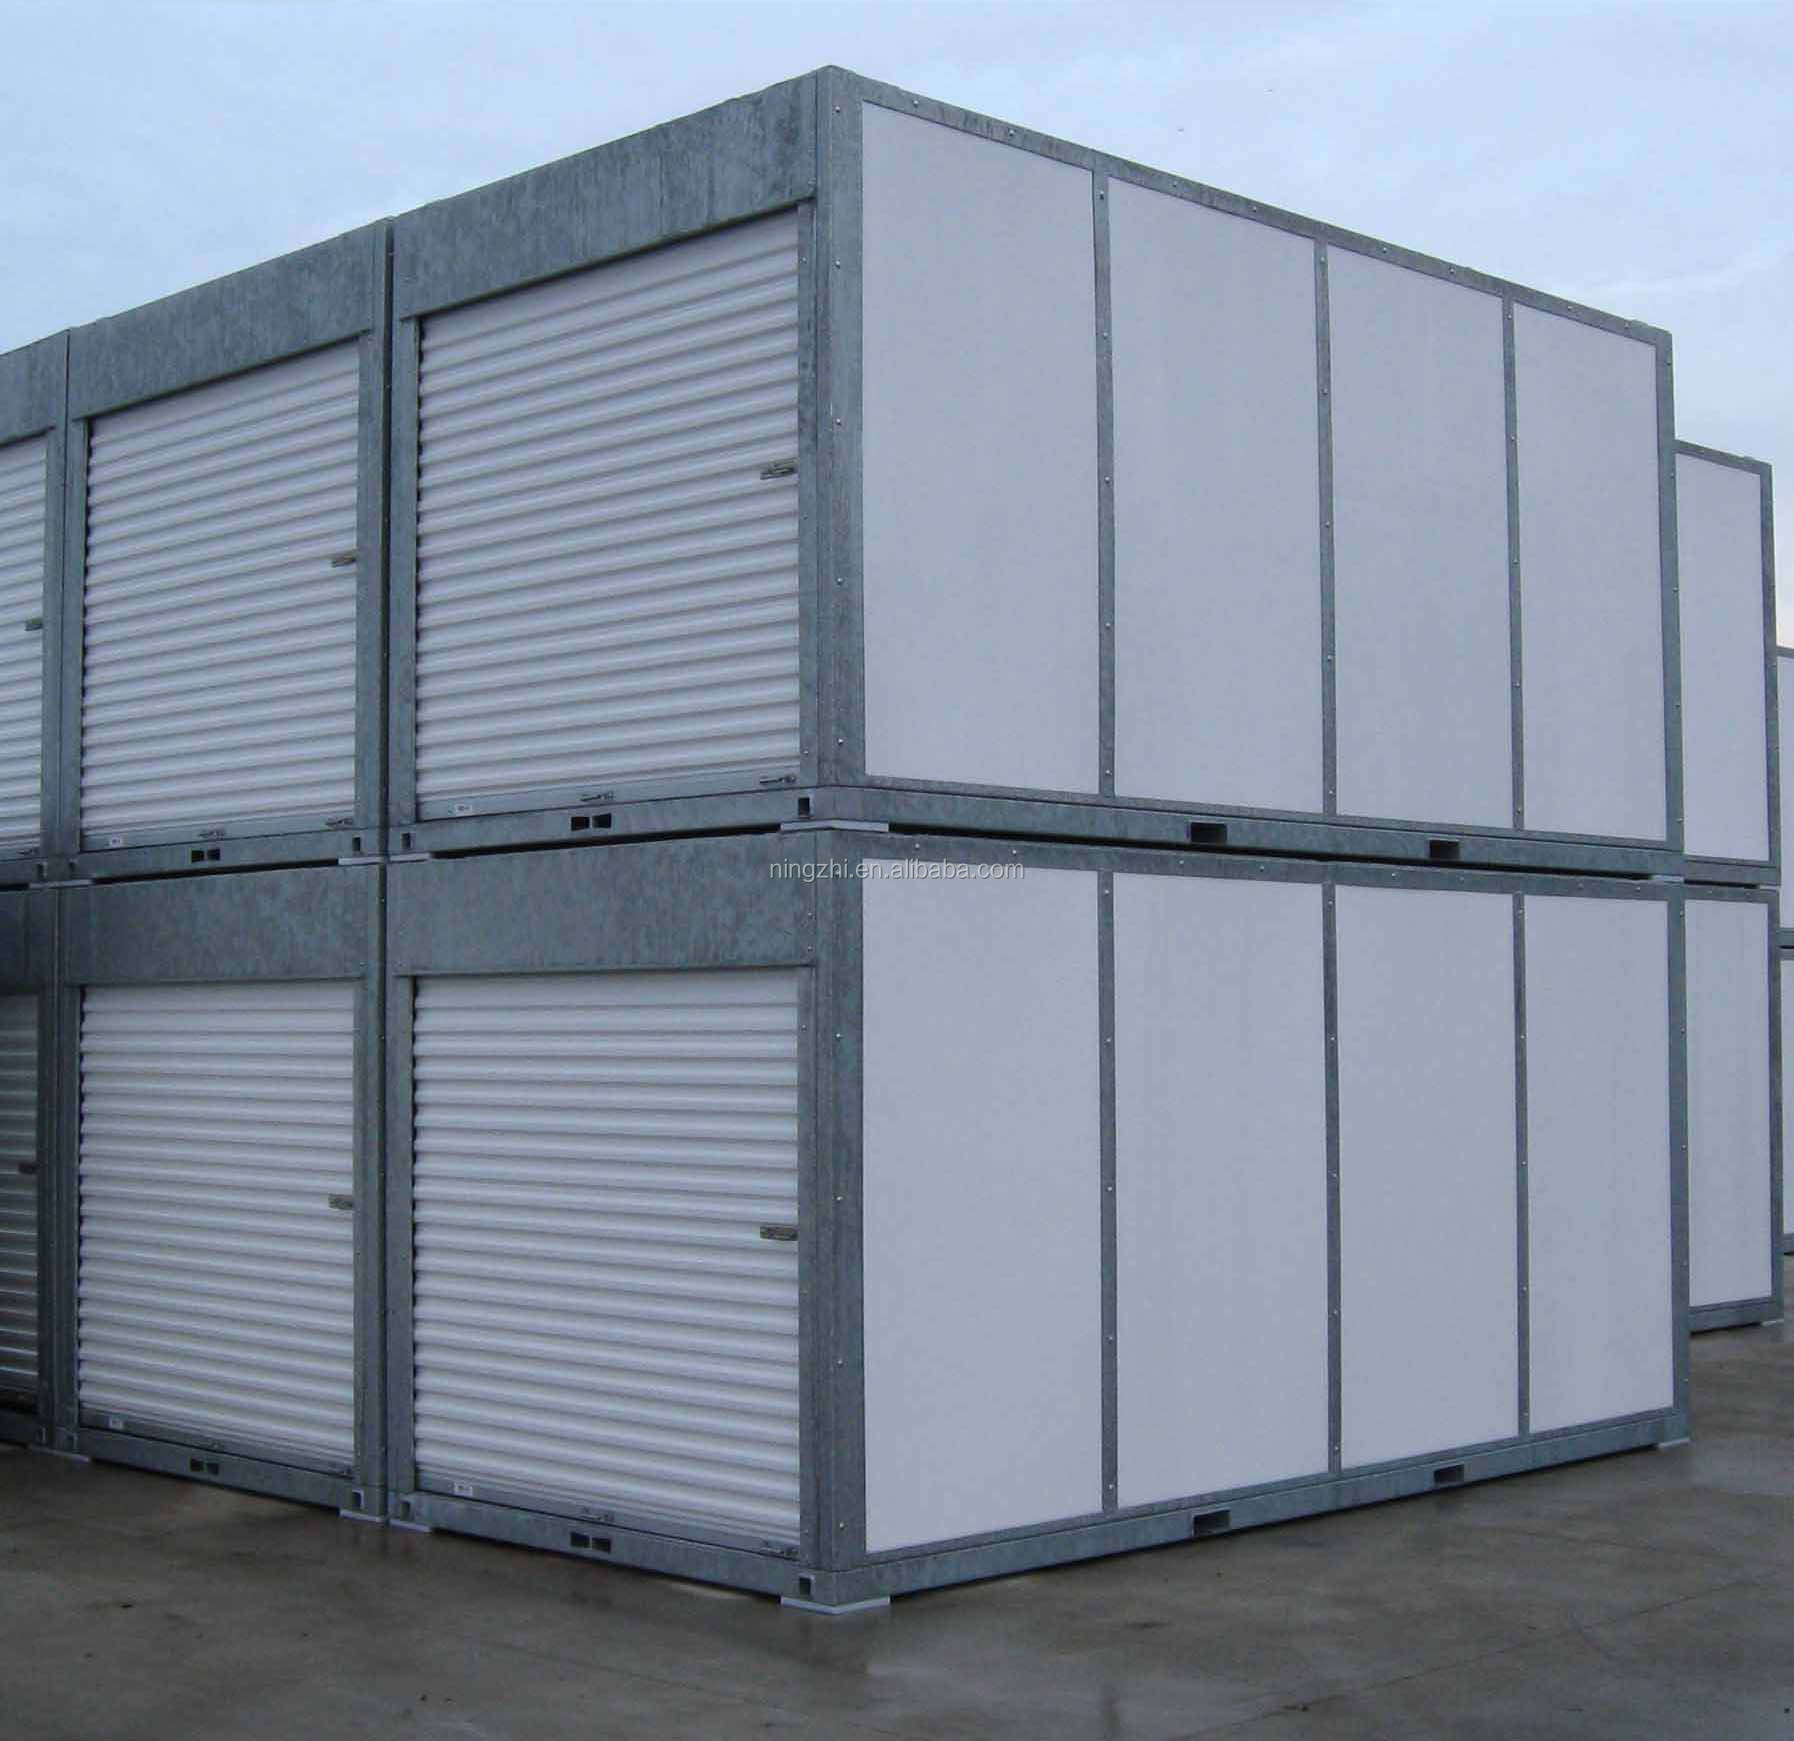 Portable Steel Storage Units : Prefab mobile steel storage container portable